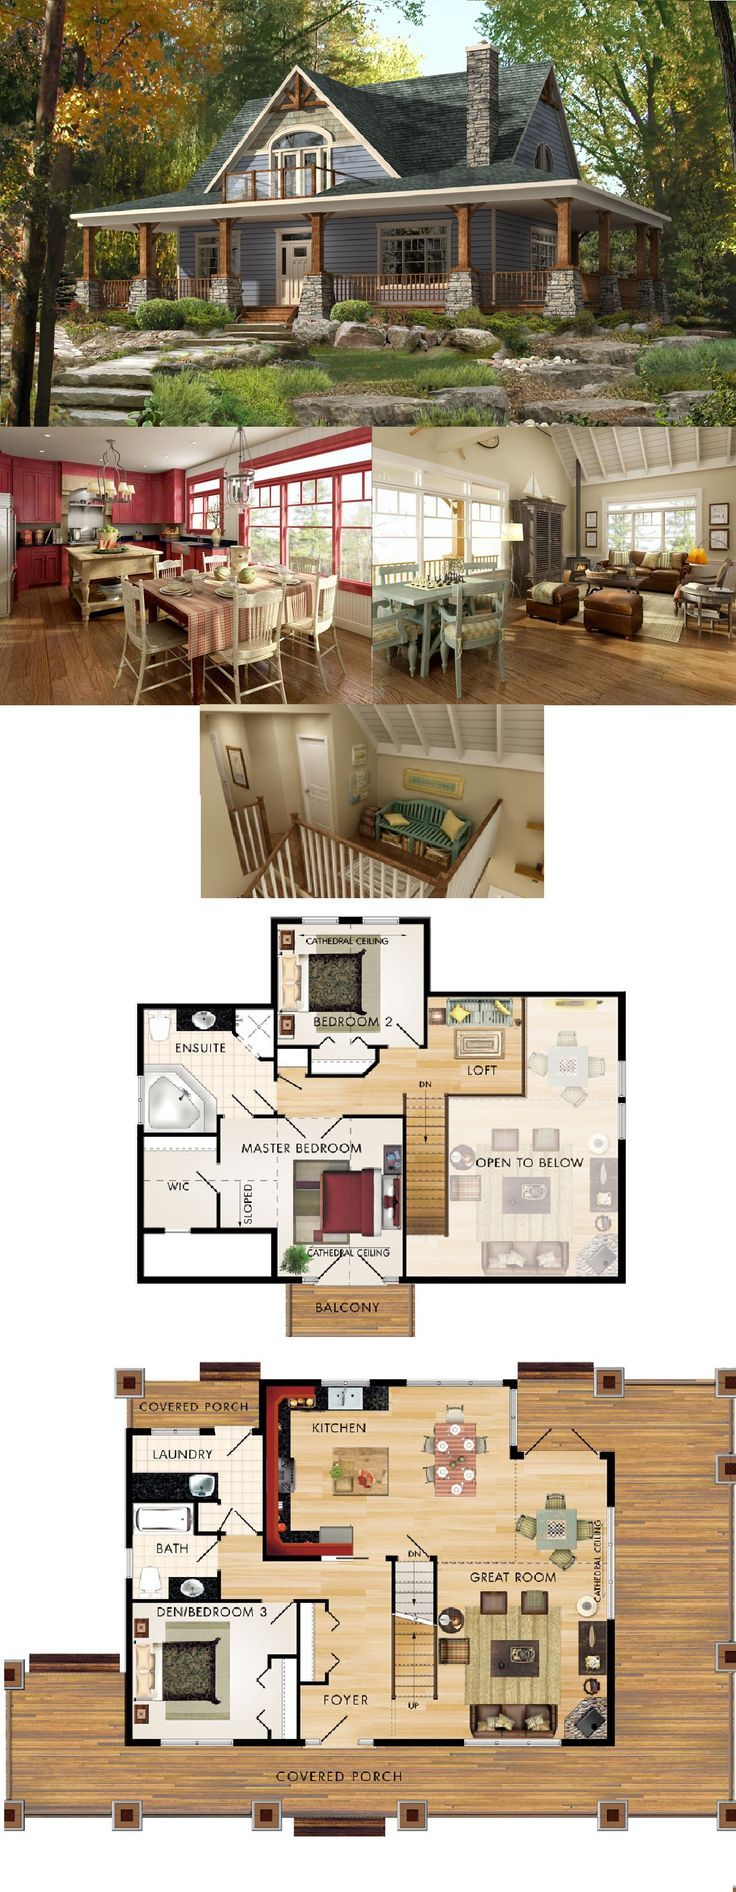 25 Best Ideas About Home Plans On Pinterest Floor Plans